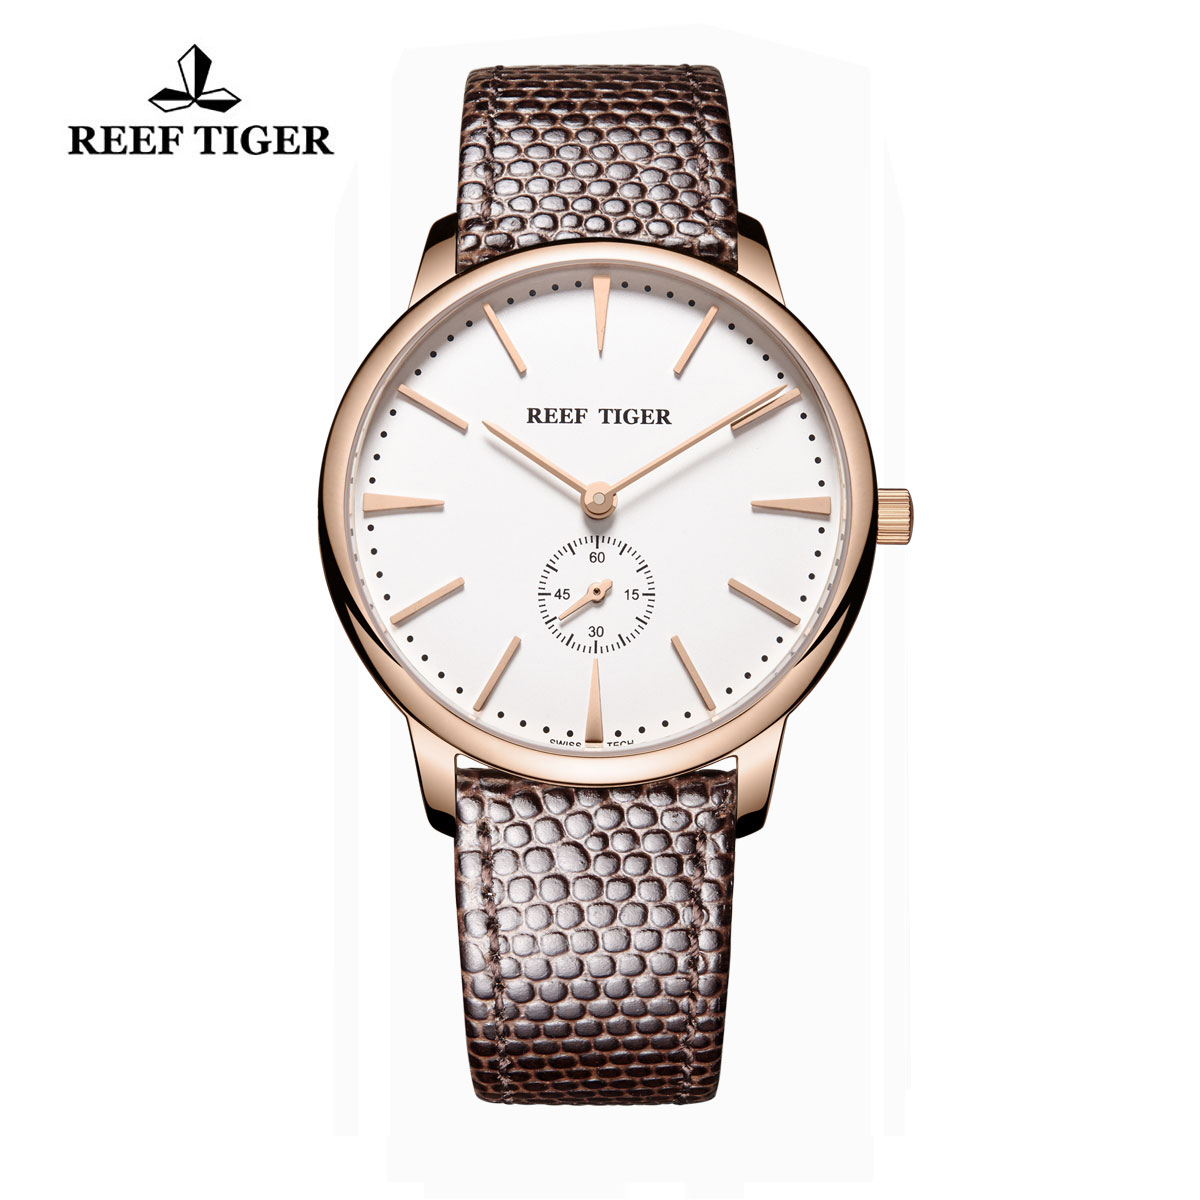 Reef Tiger Vintage Casual Watch White Dial Rose Gold Calfskin Leather RGA820-PWB-G